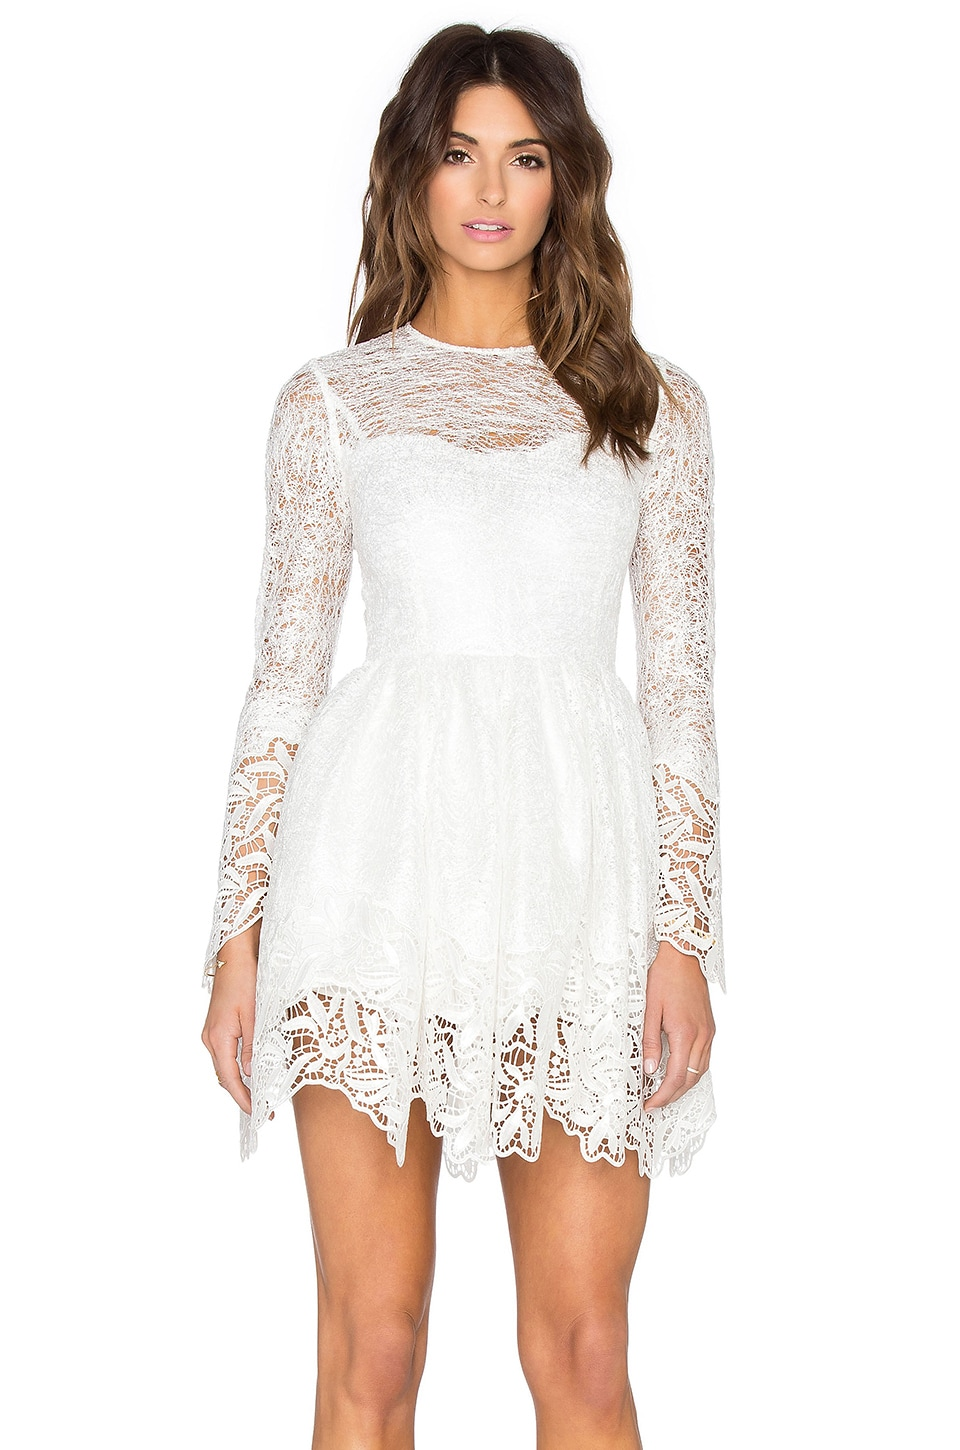 Alexis Malin Dress in White